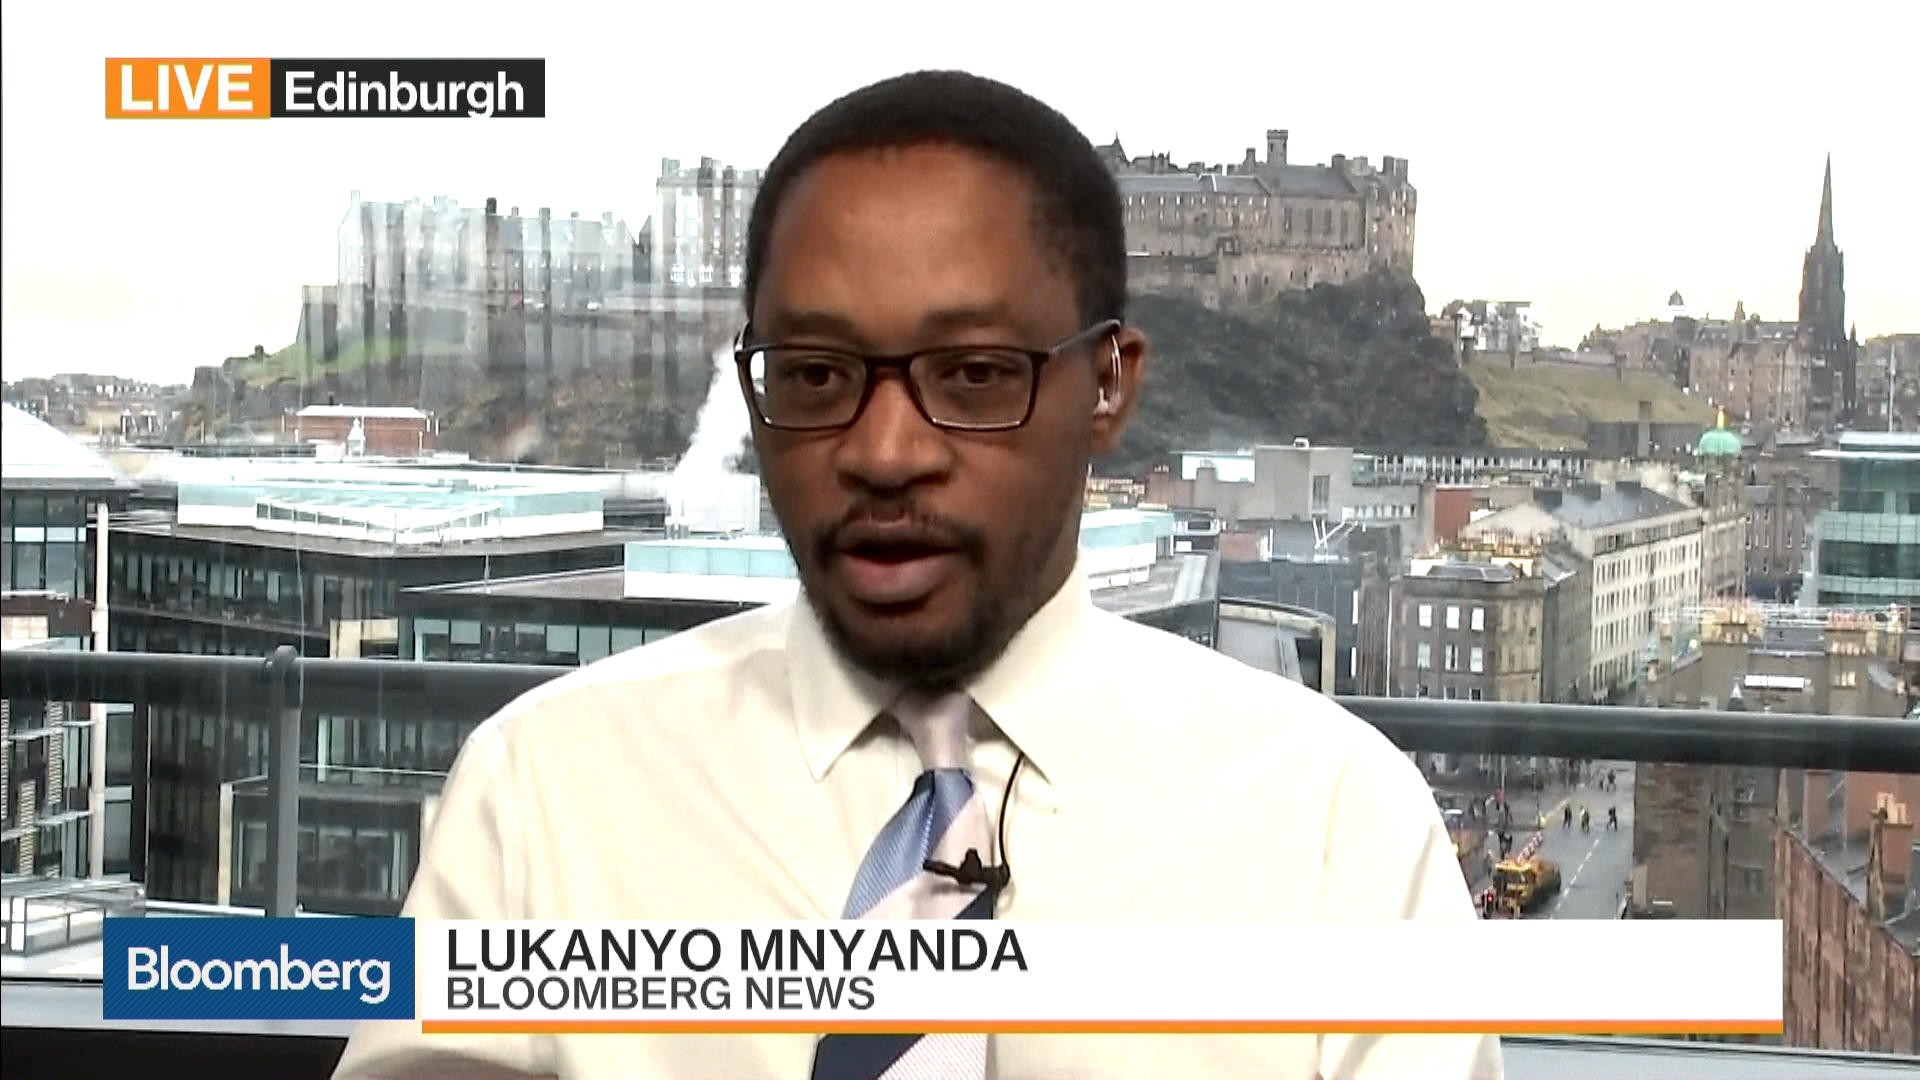 New editor for Business Day as Lukanyo Mnyanda takes helm